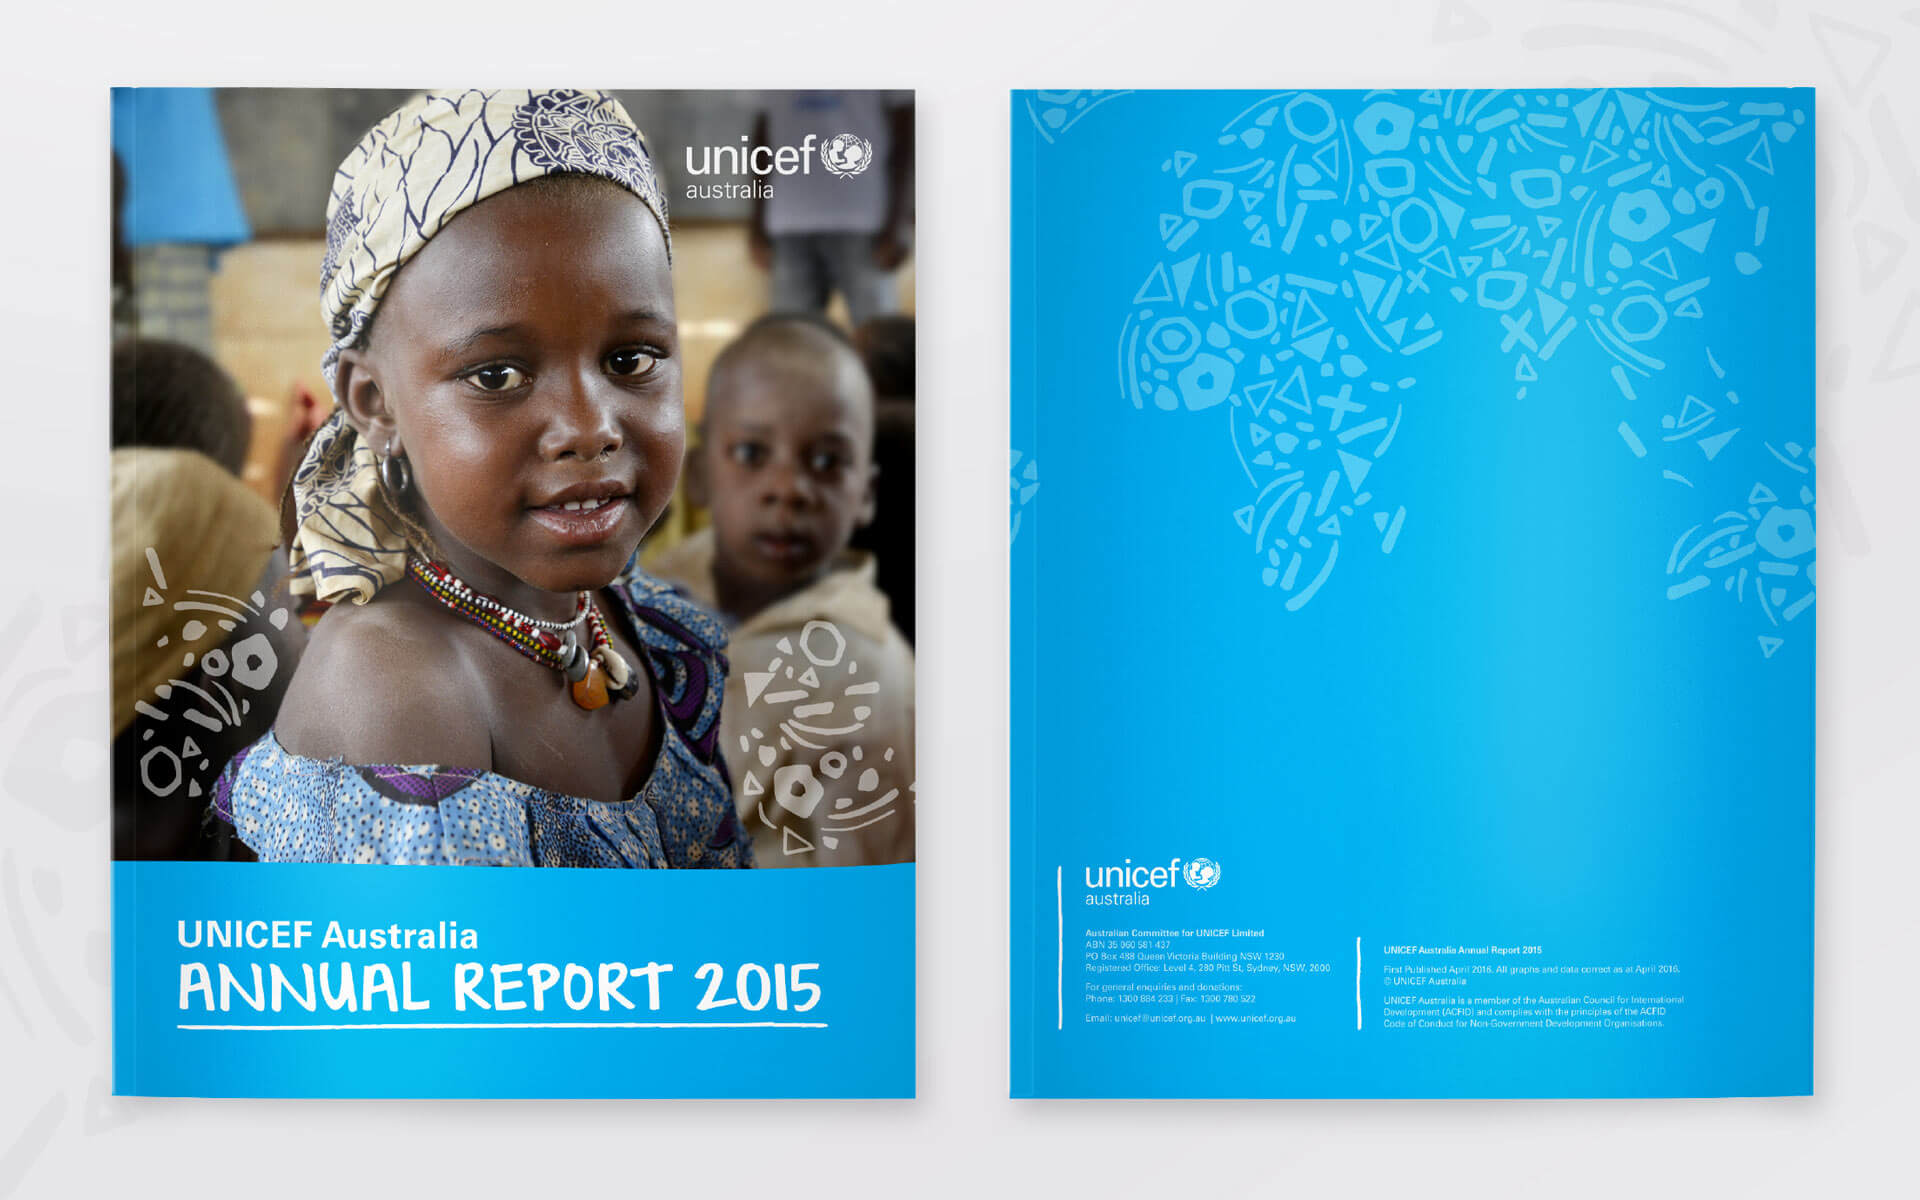 UNICEF Annual Report cover/back cover design.